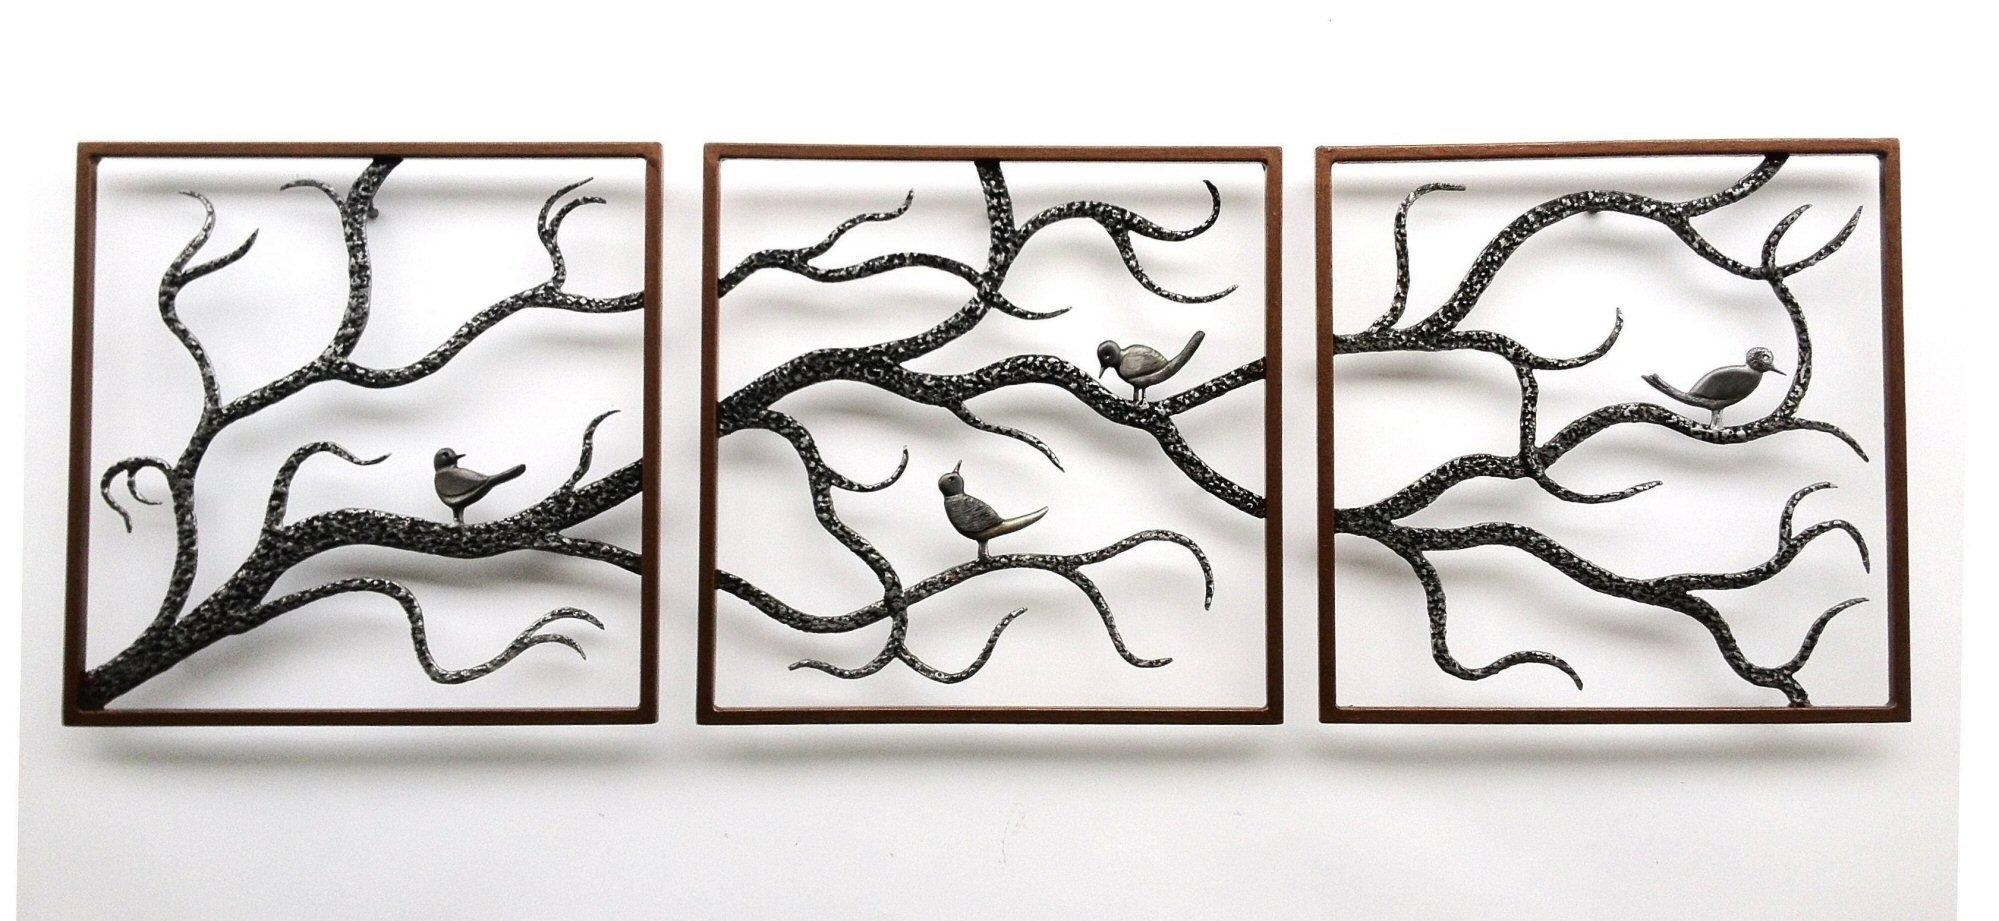 Wall Art Designs: Metal Wall Art Trees Birch Three Framed Cute For Large Metal Wall Art Sculptures (View 5 of 20)